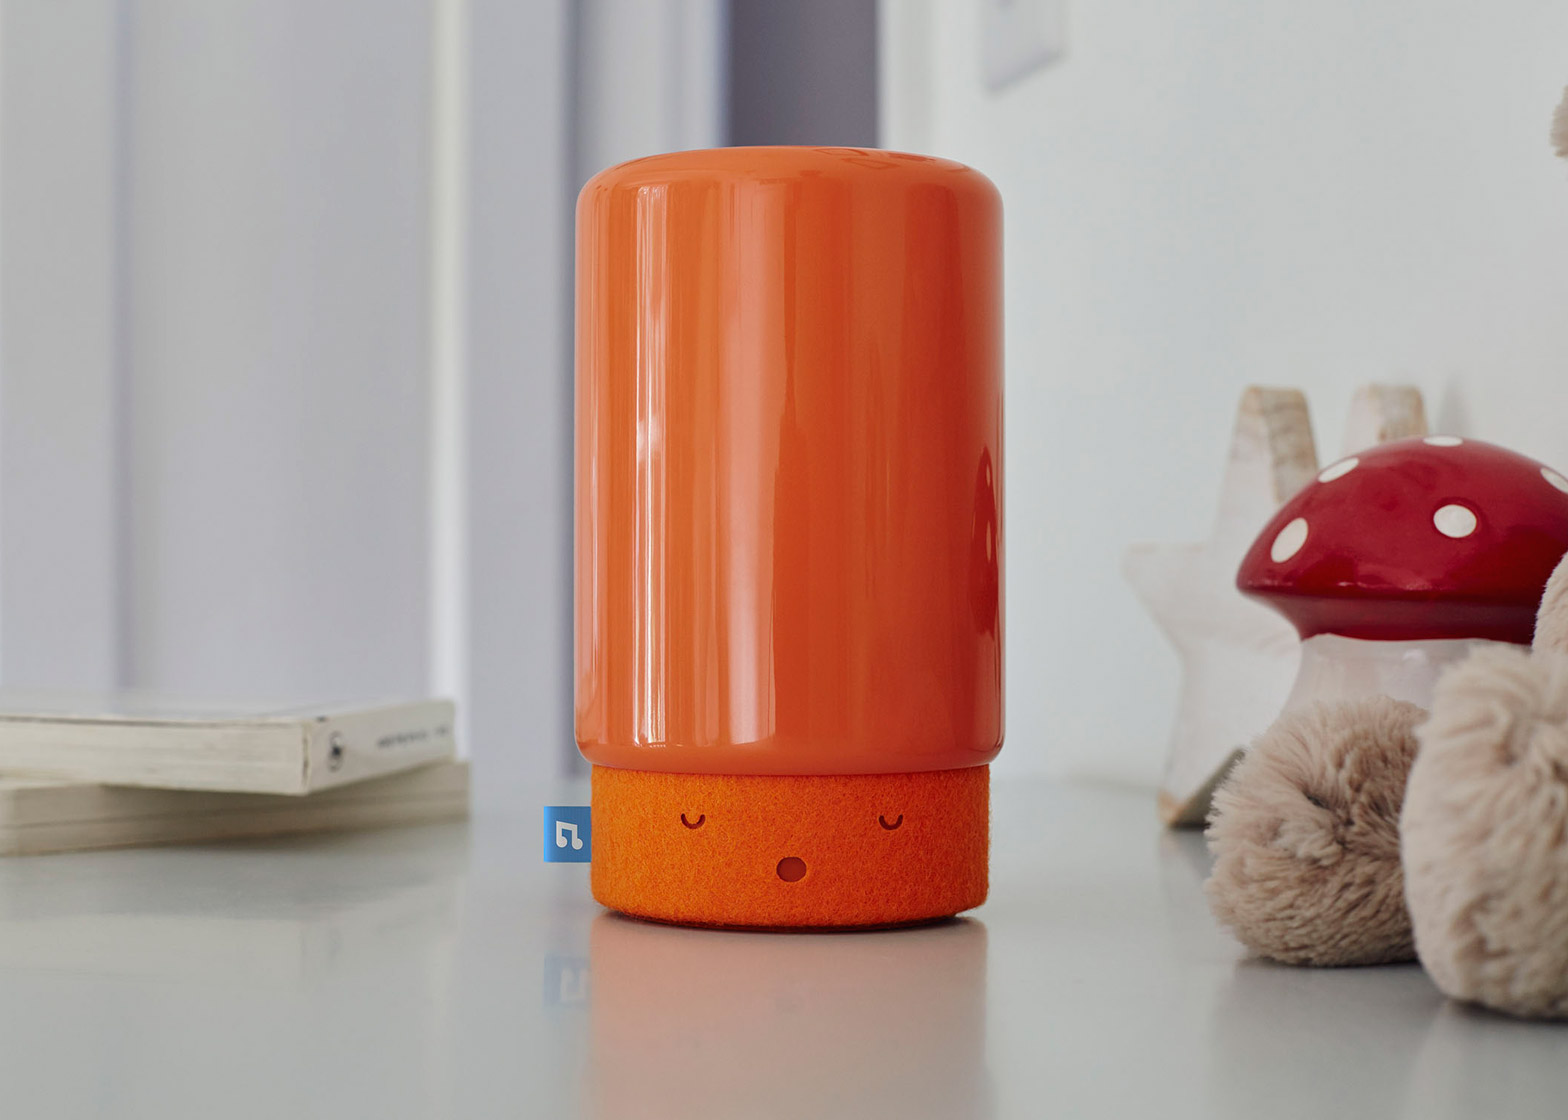 Best Nightlight For Sleep Suzy Snooze Monitor Uses Light And Sound To Help Babies Sleep